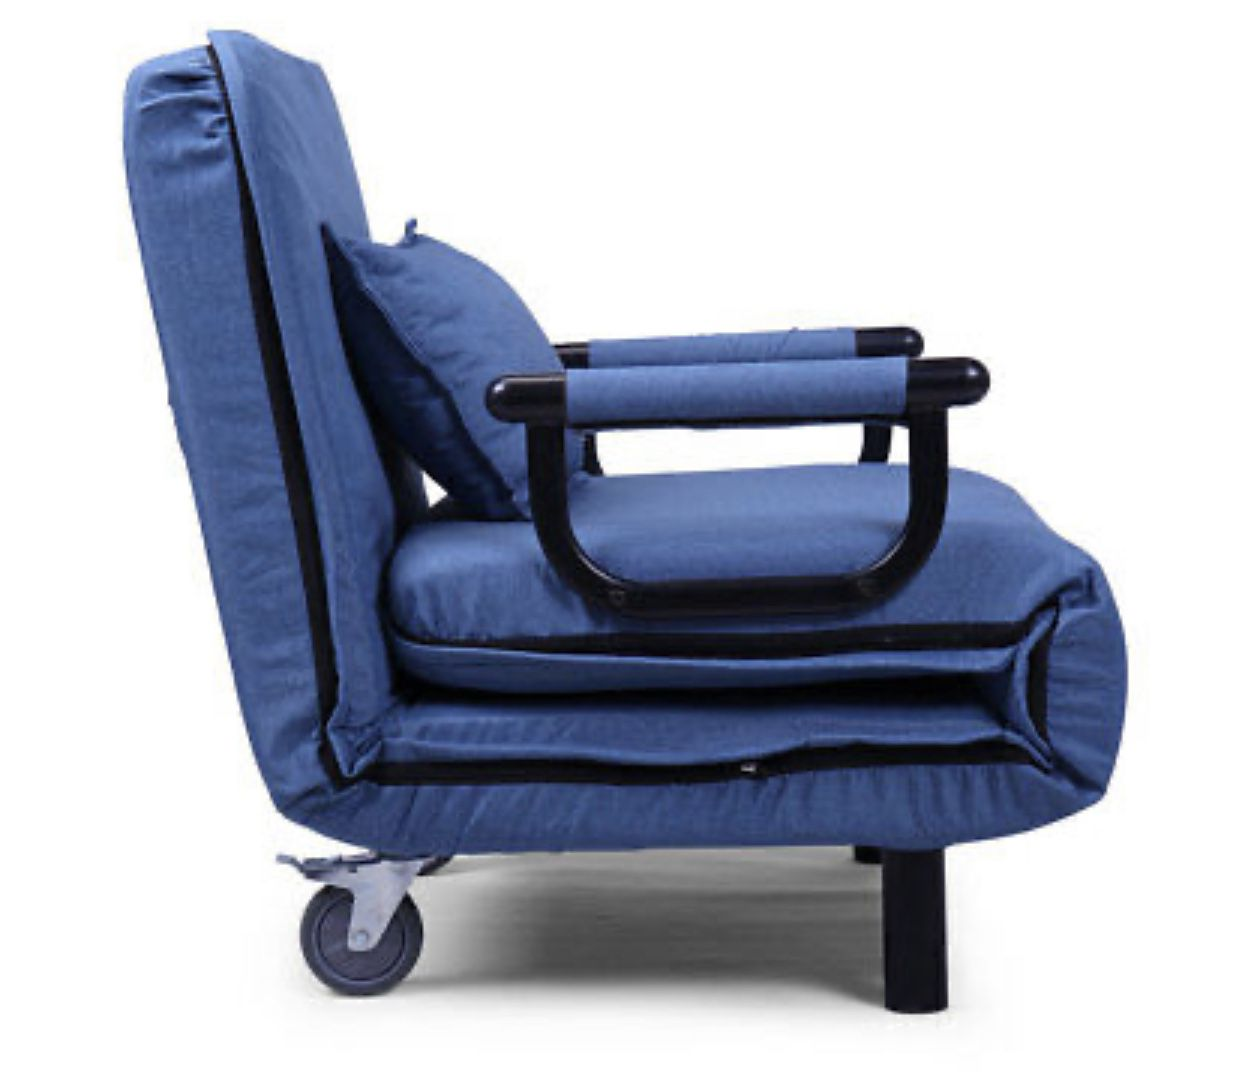 Sofa Bed Folding Arm Chair Width Convertible Sleeper Recliner Lounge New